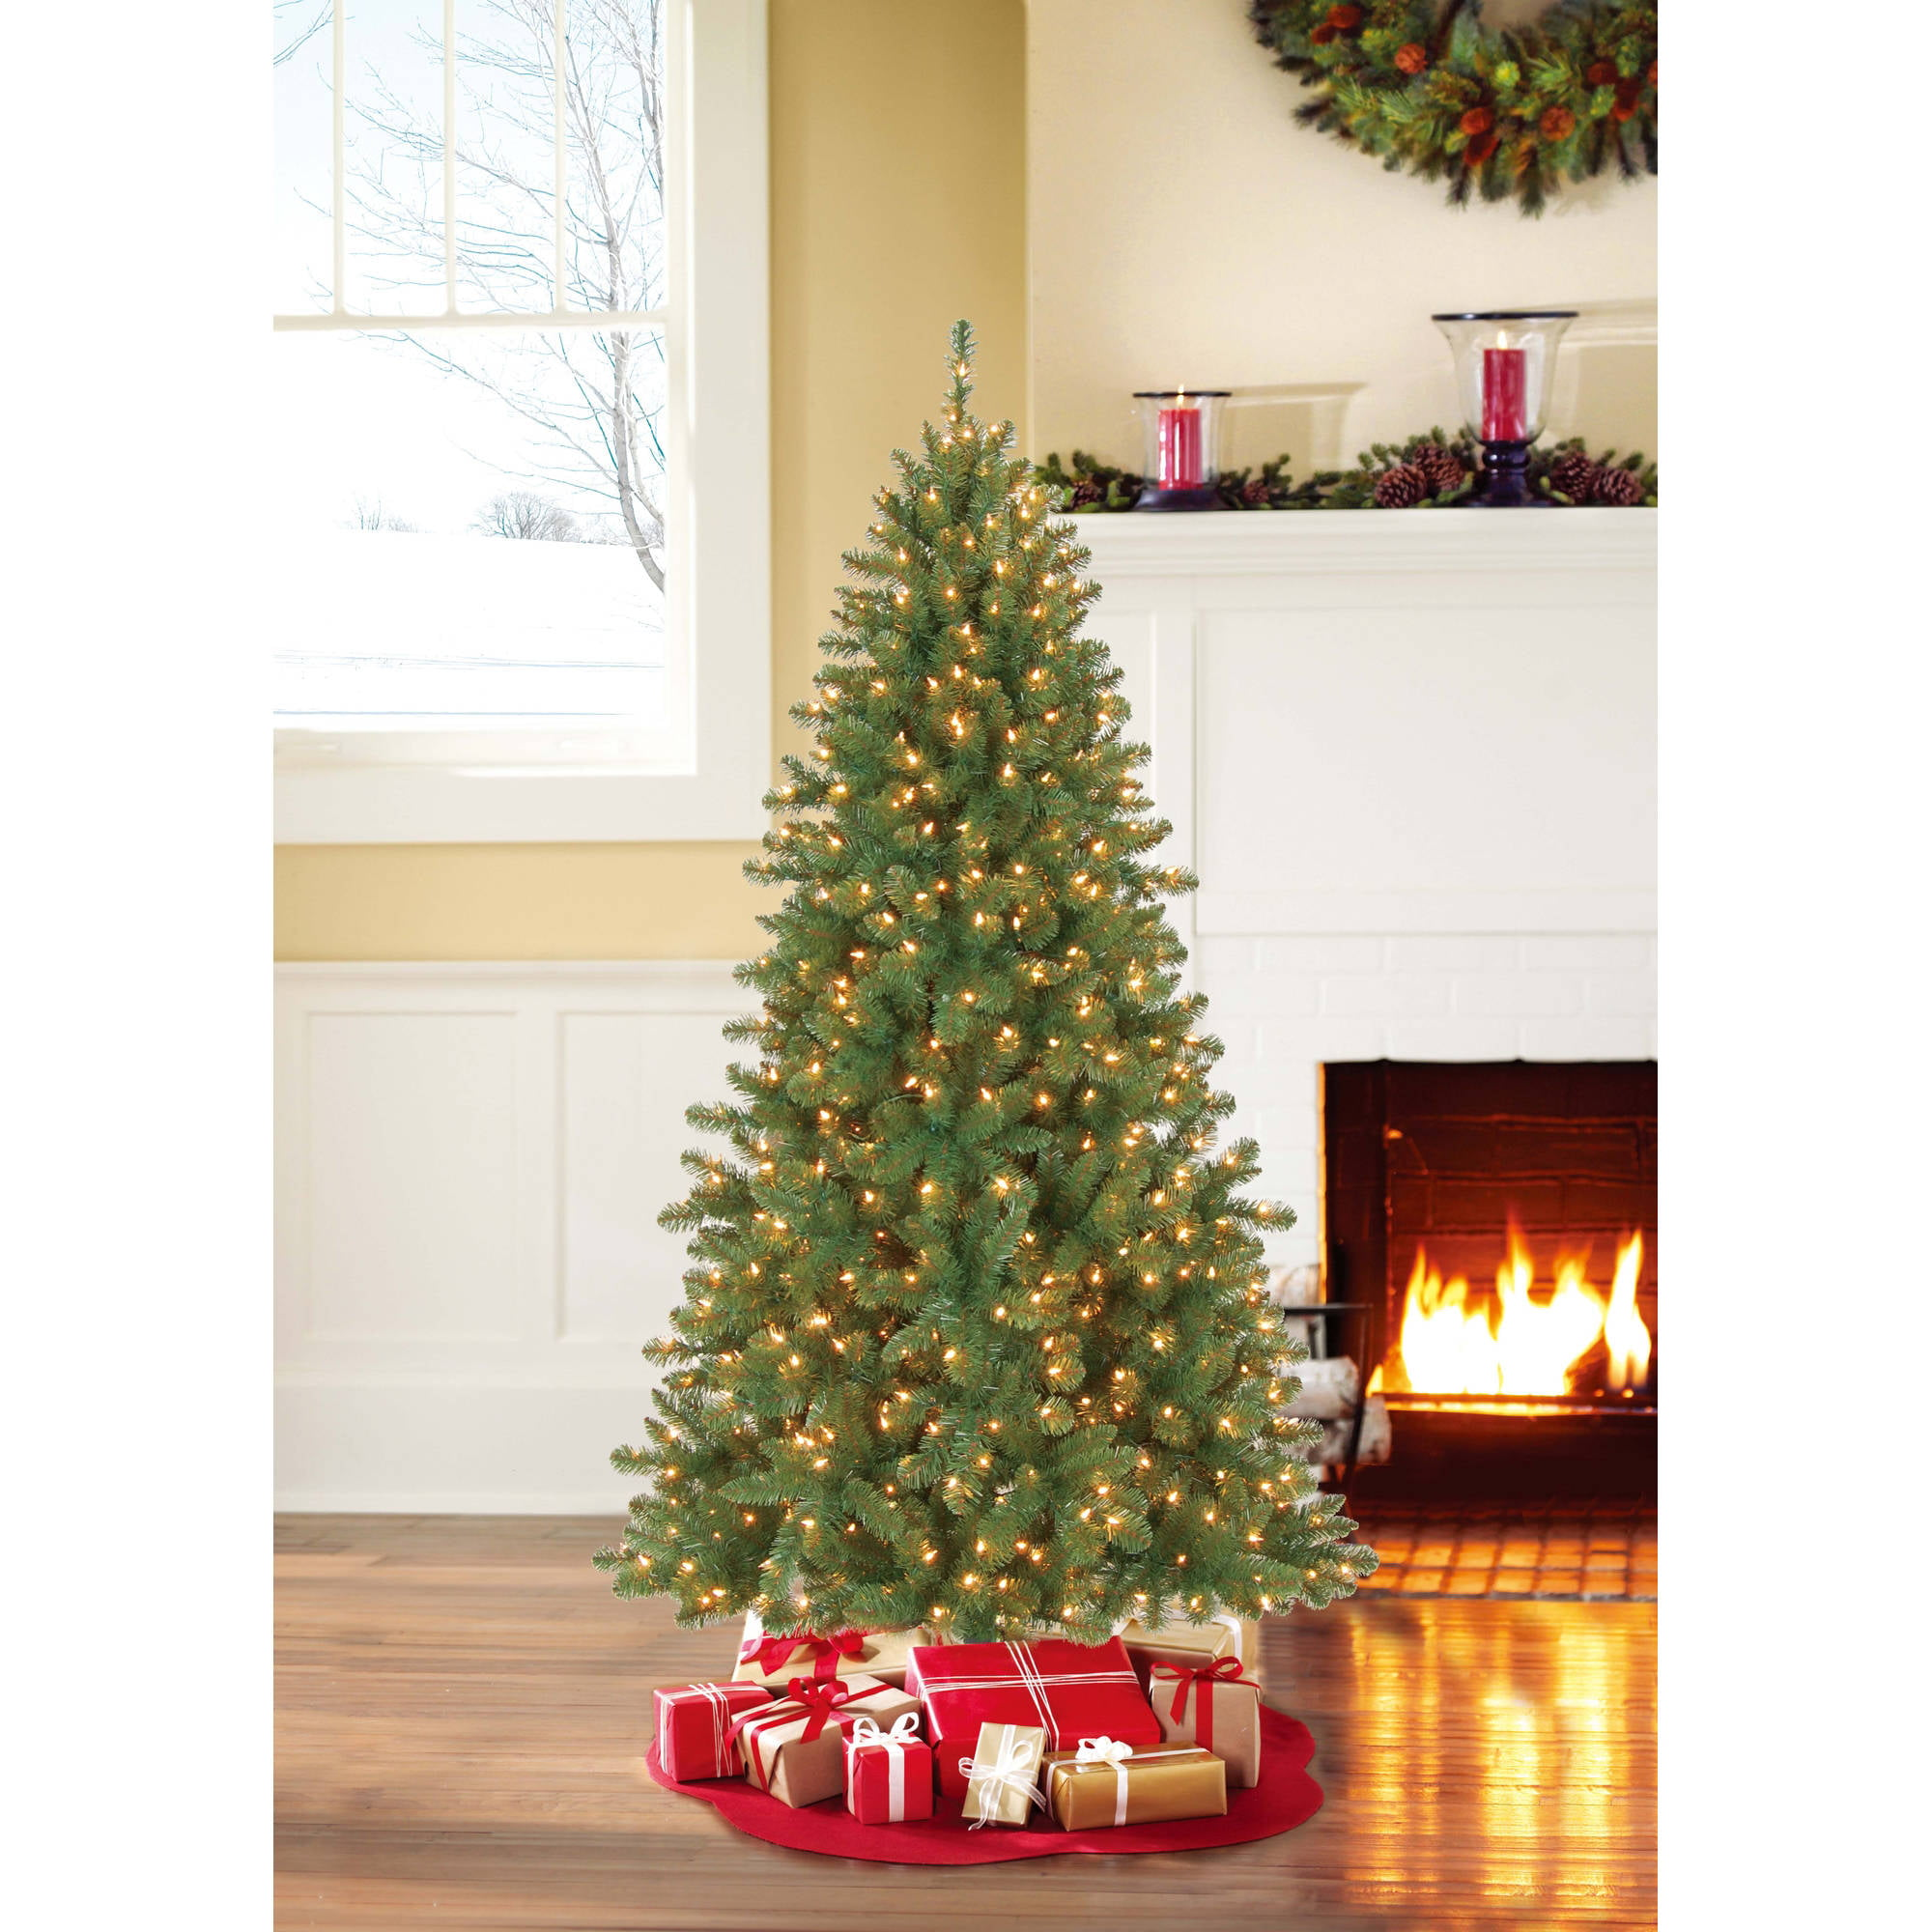 best choice products 7ft pre lit fiber optic artificial christmas pine tree w 280 lights 8 sequences stand green walmartcom - Pre Lit Decorated Christmas Trees